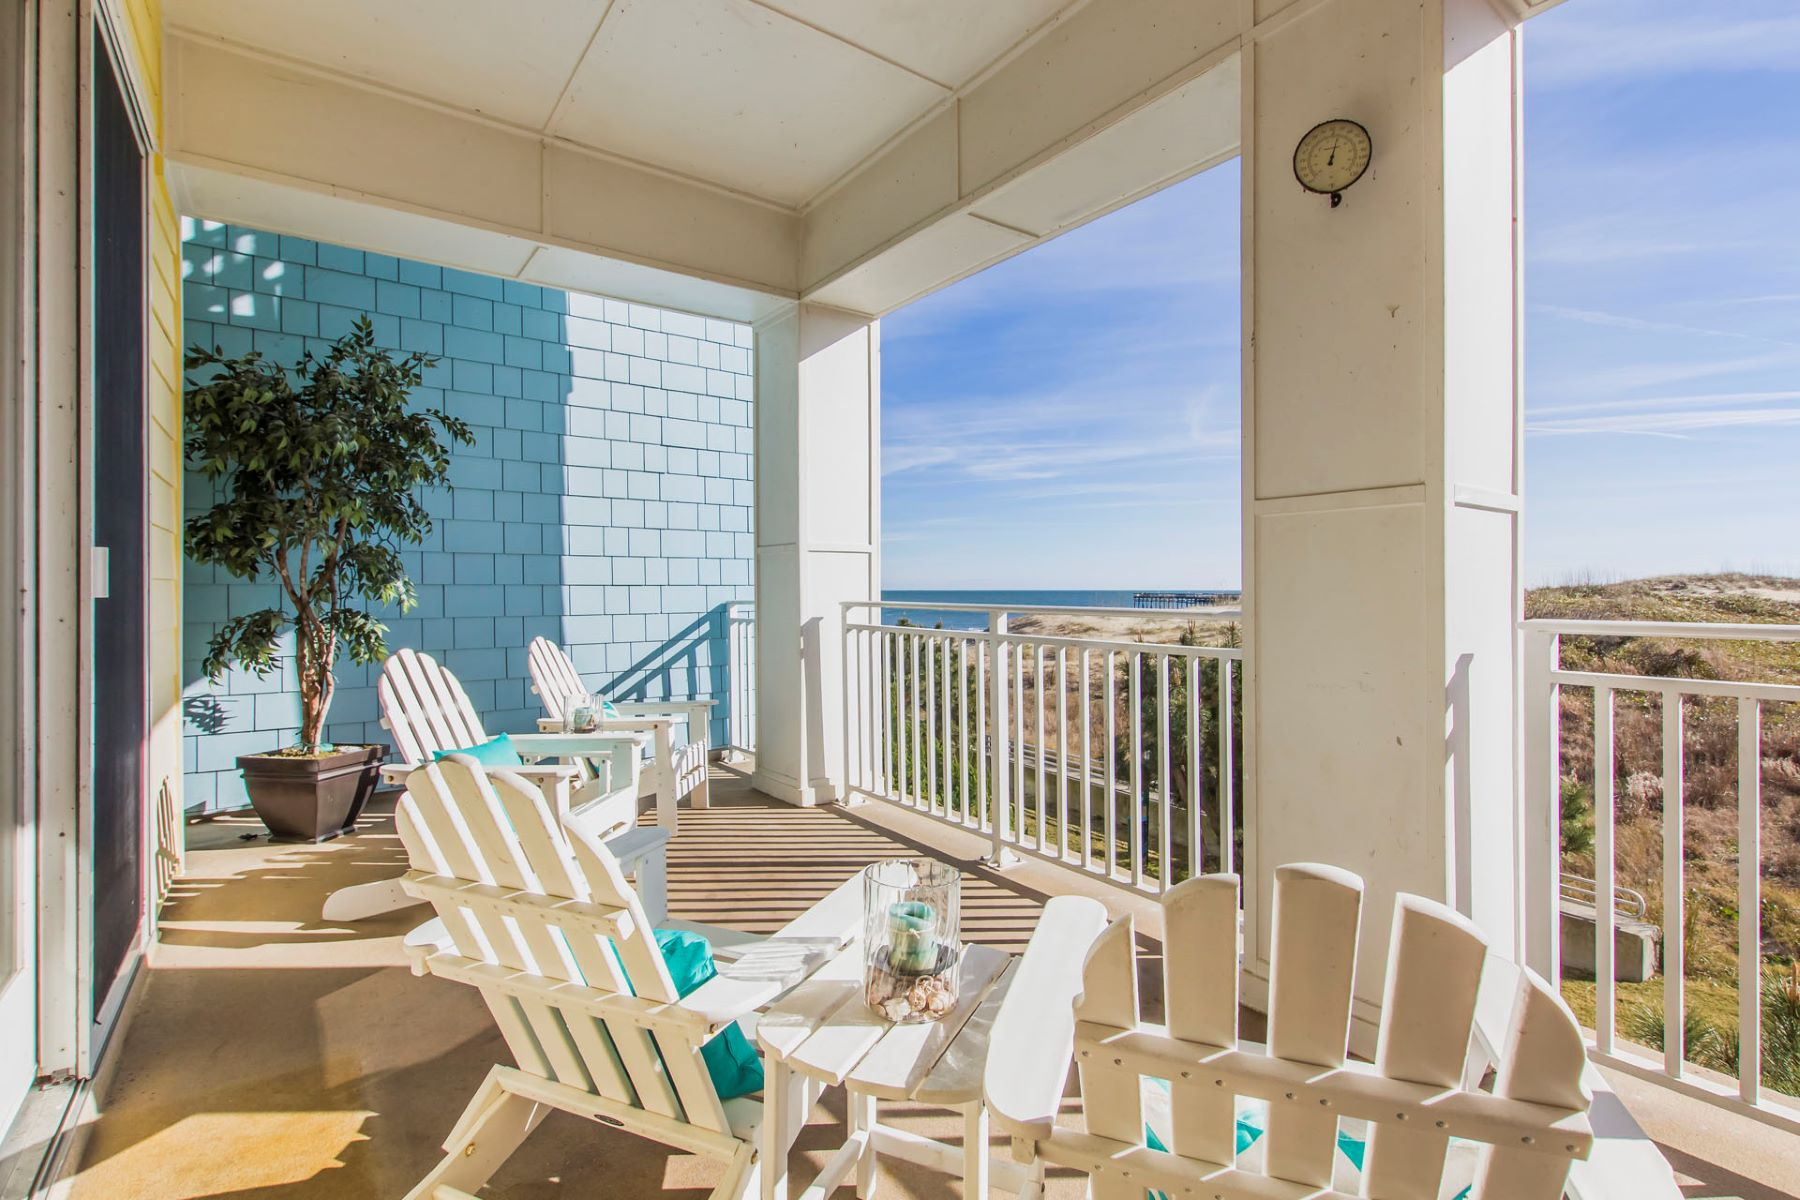 獨棟家庭住宅 為 出售 在 Come Sail Away - Sandbridge Beach 3738 Sandpiper Road Unit 113B, Virginia Beach, 弗吉尼亞州, 23456 美國